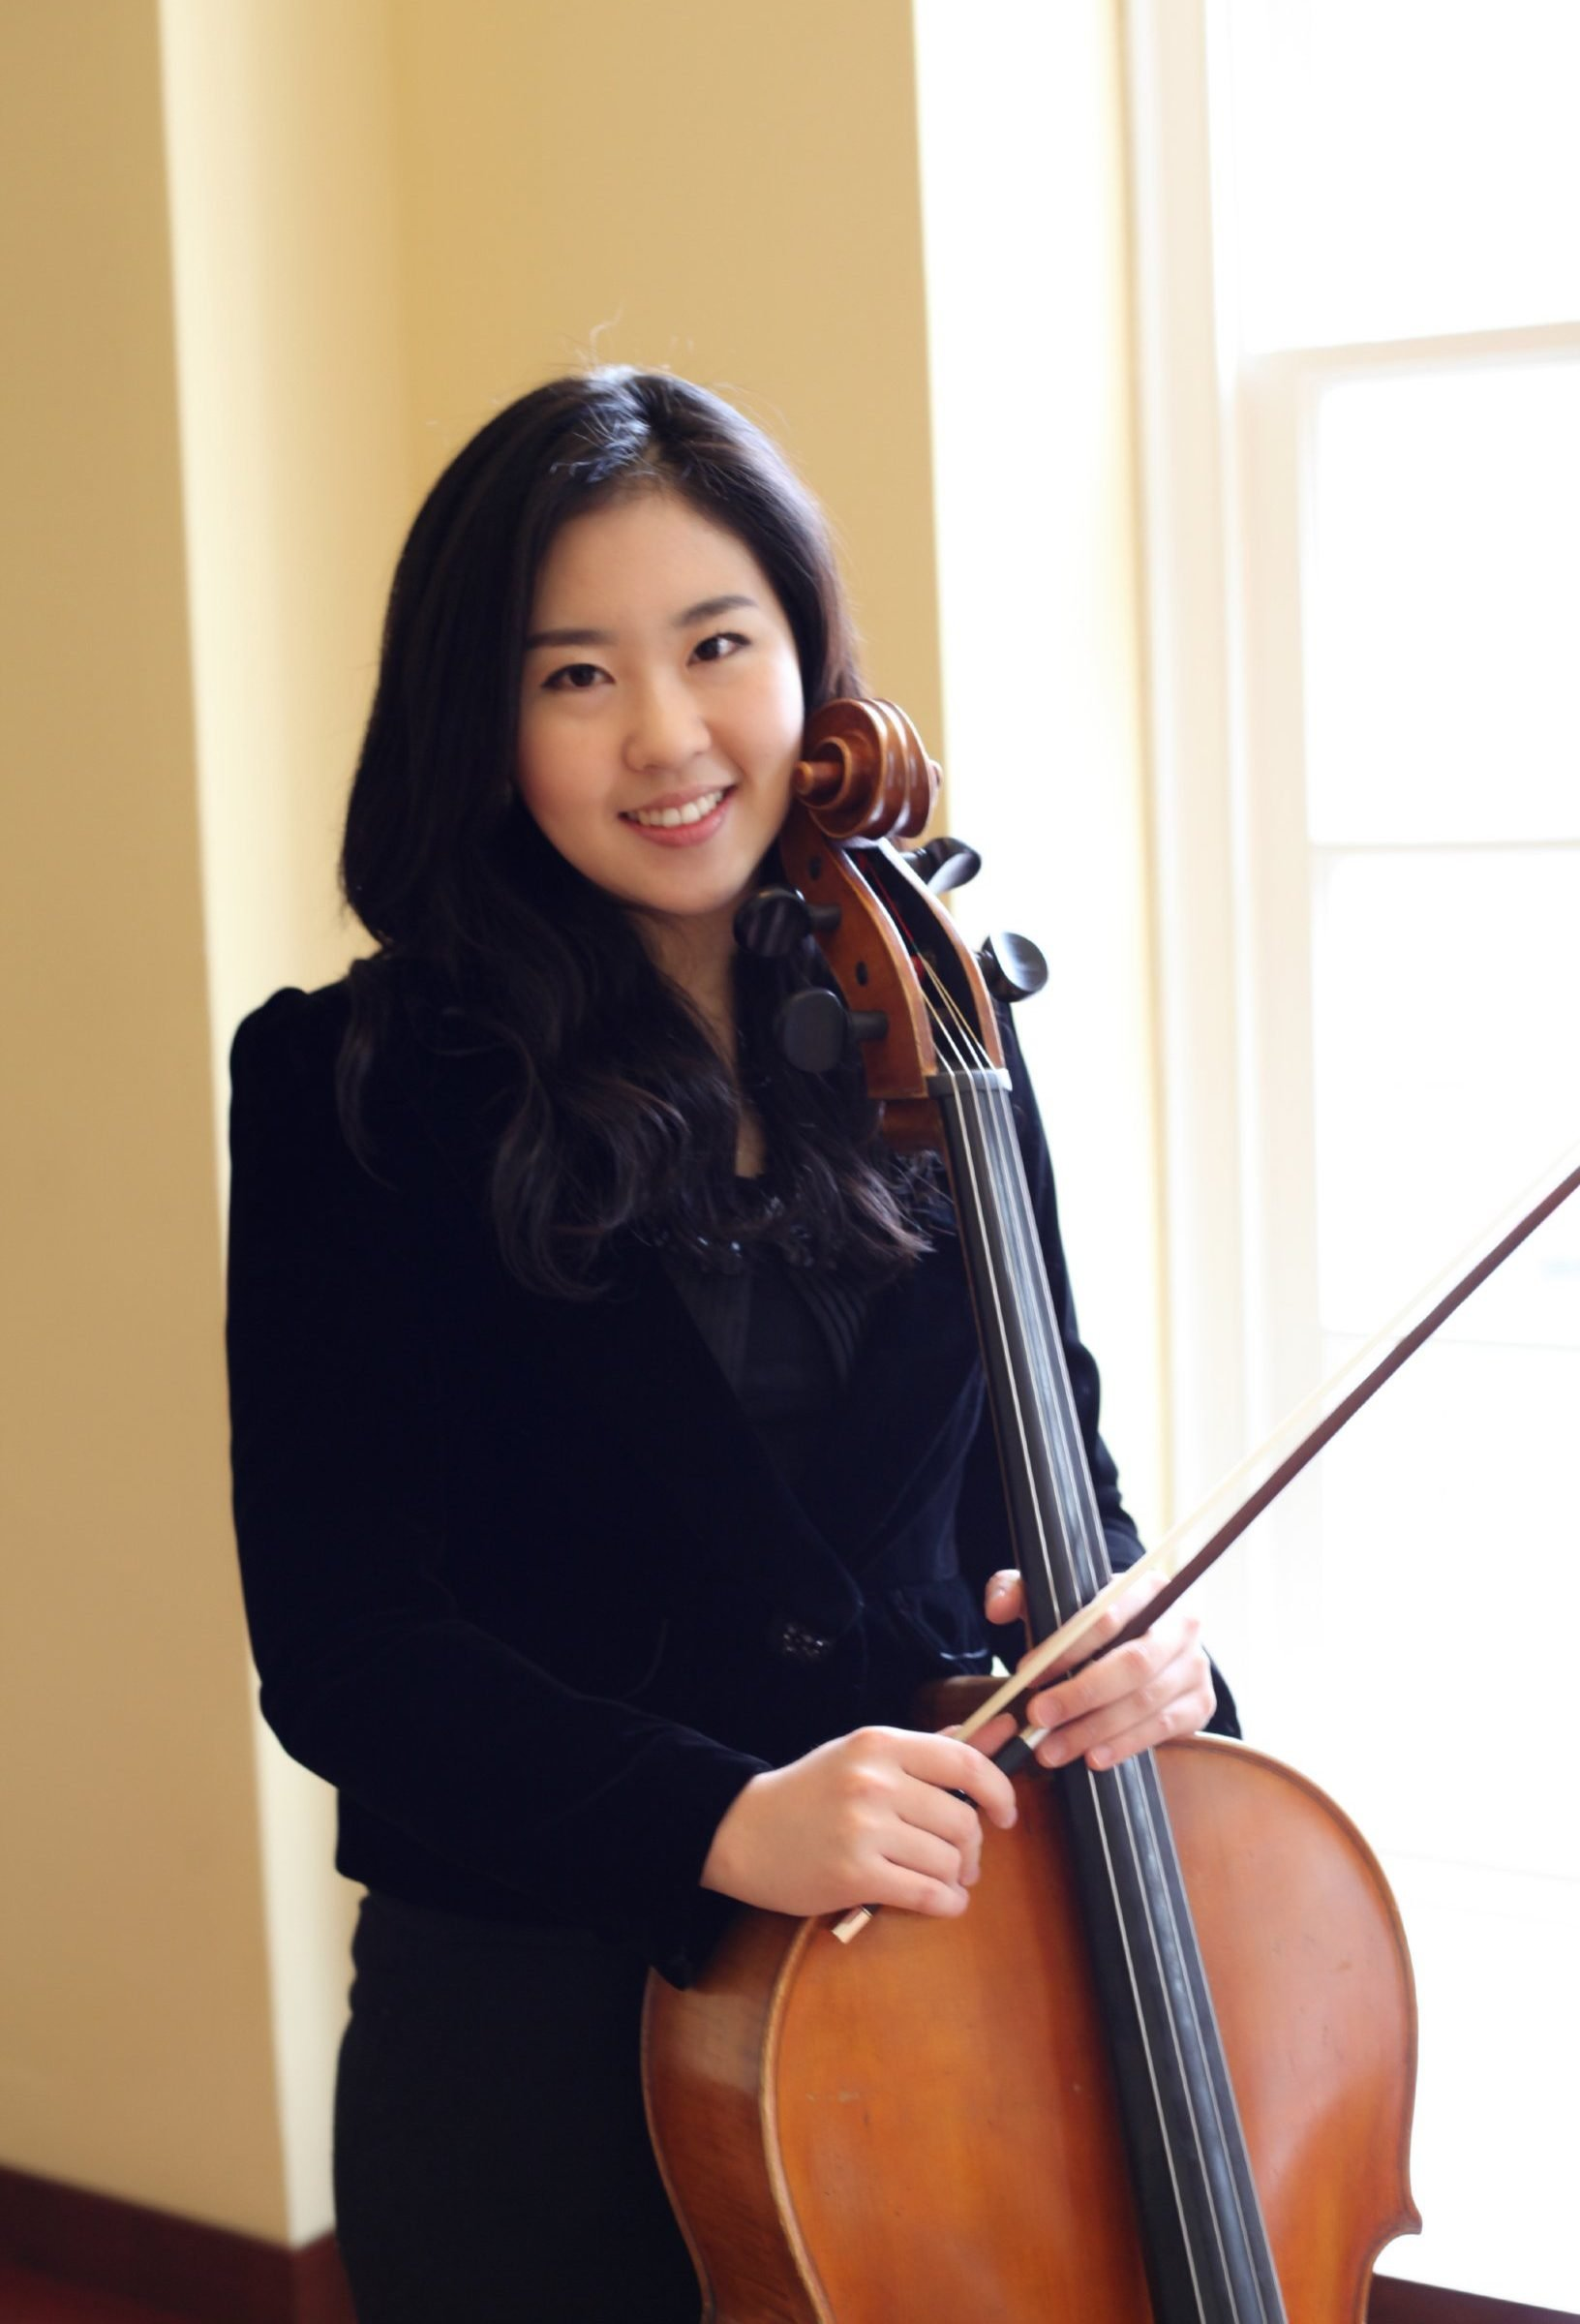 Yoonhee Ko posing and smiling with her cello in front of sunny window